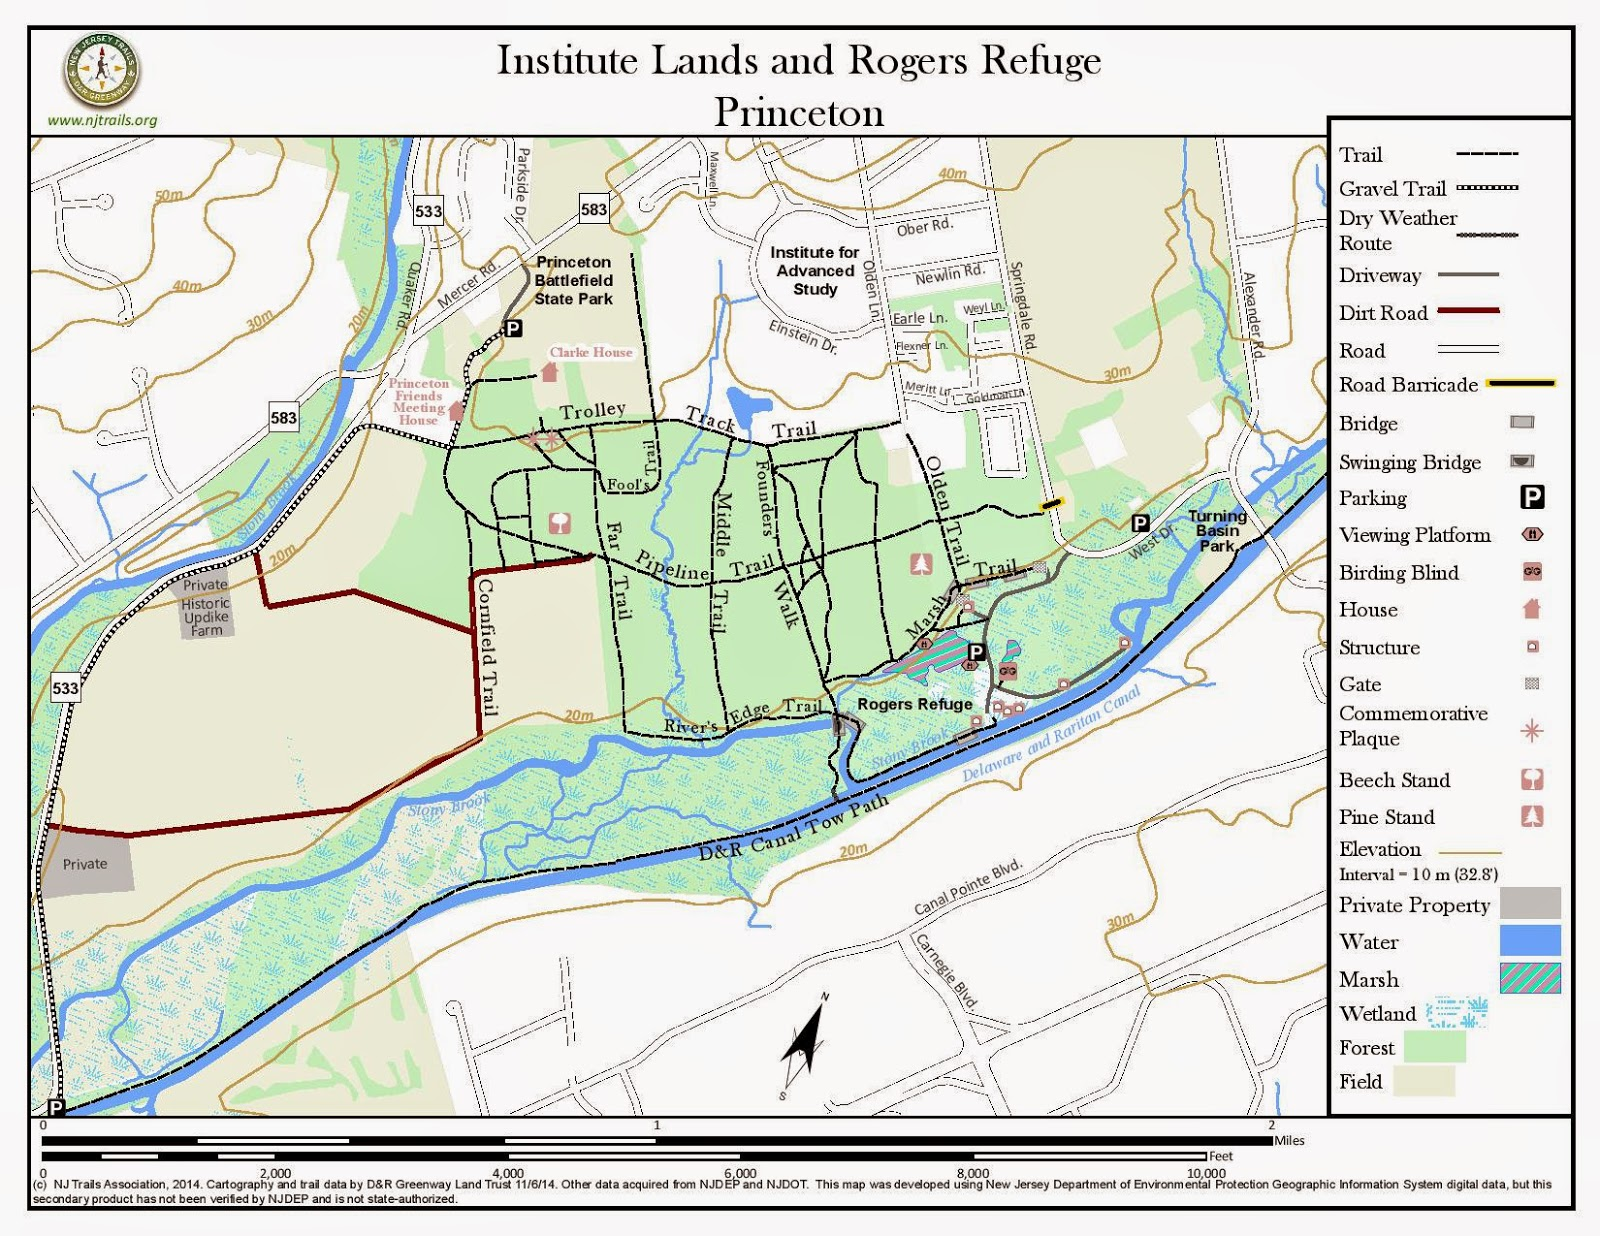 Institute Woods Trails Map